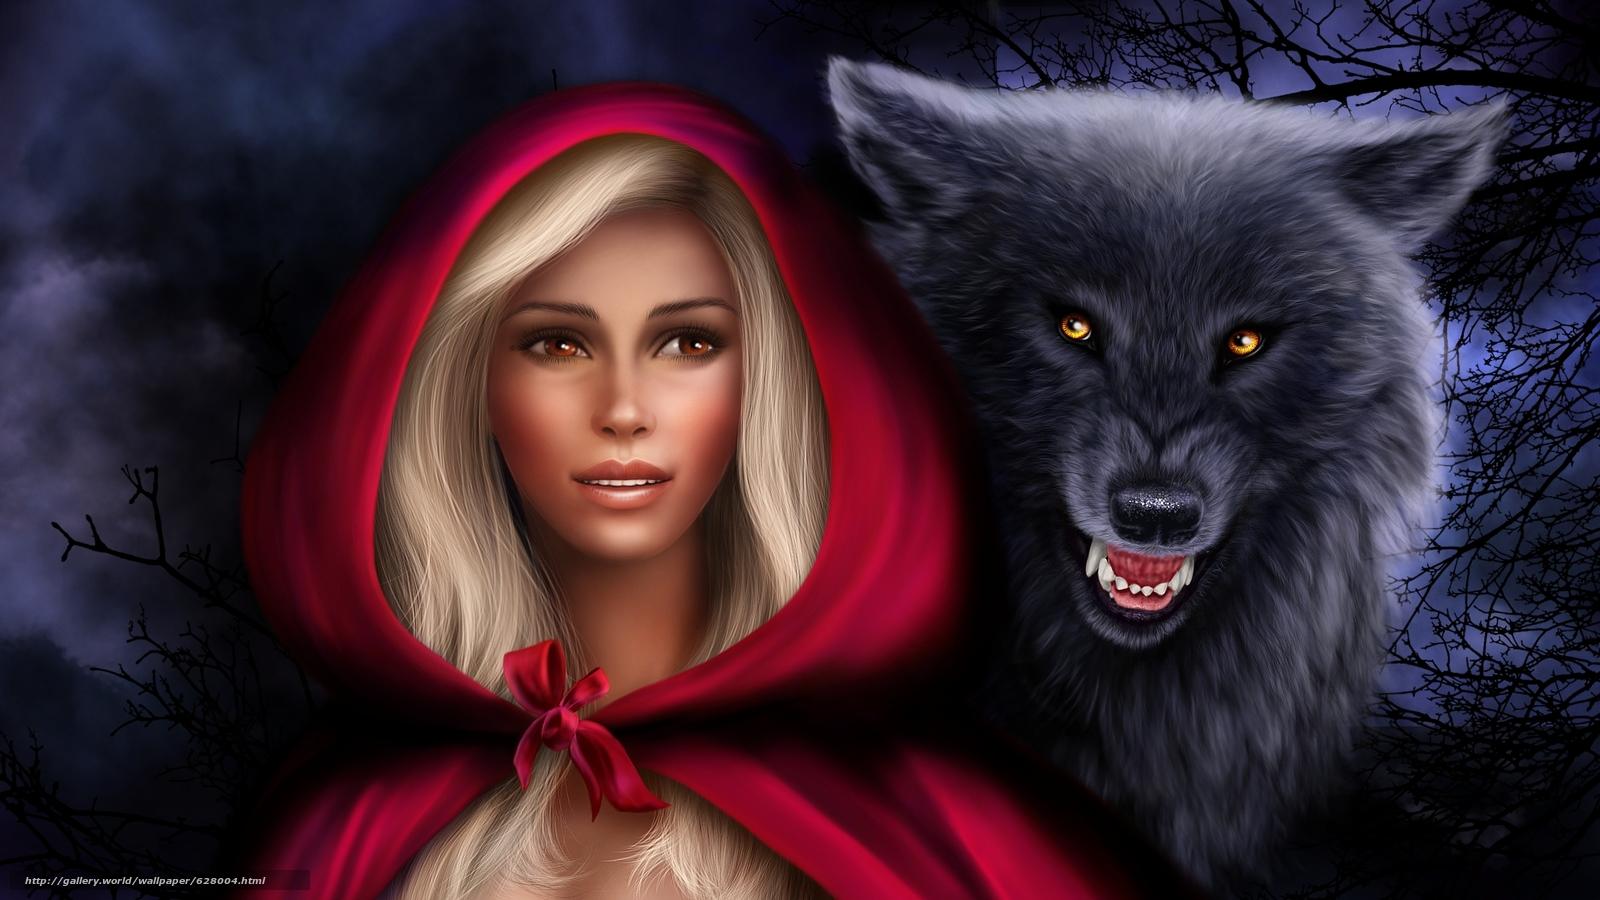 Download wallpaper Red Riding Hood,  gray wolf,  fantasy free desktop wallpaper in the resolution 2560x1440 — picture №628004